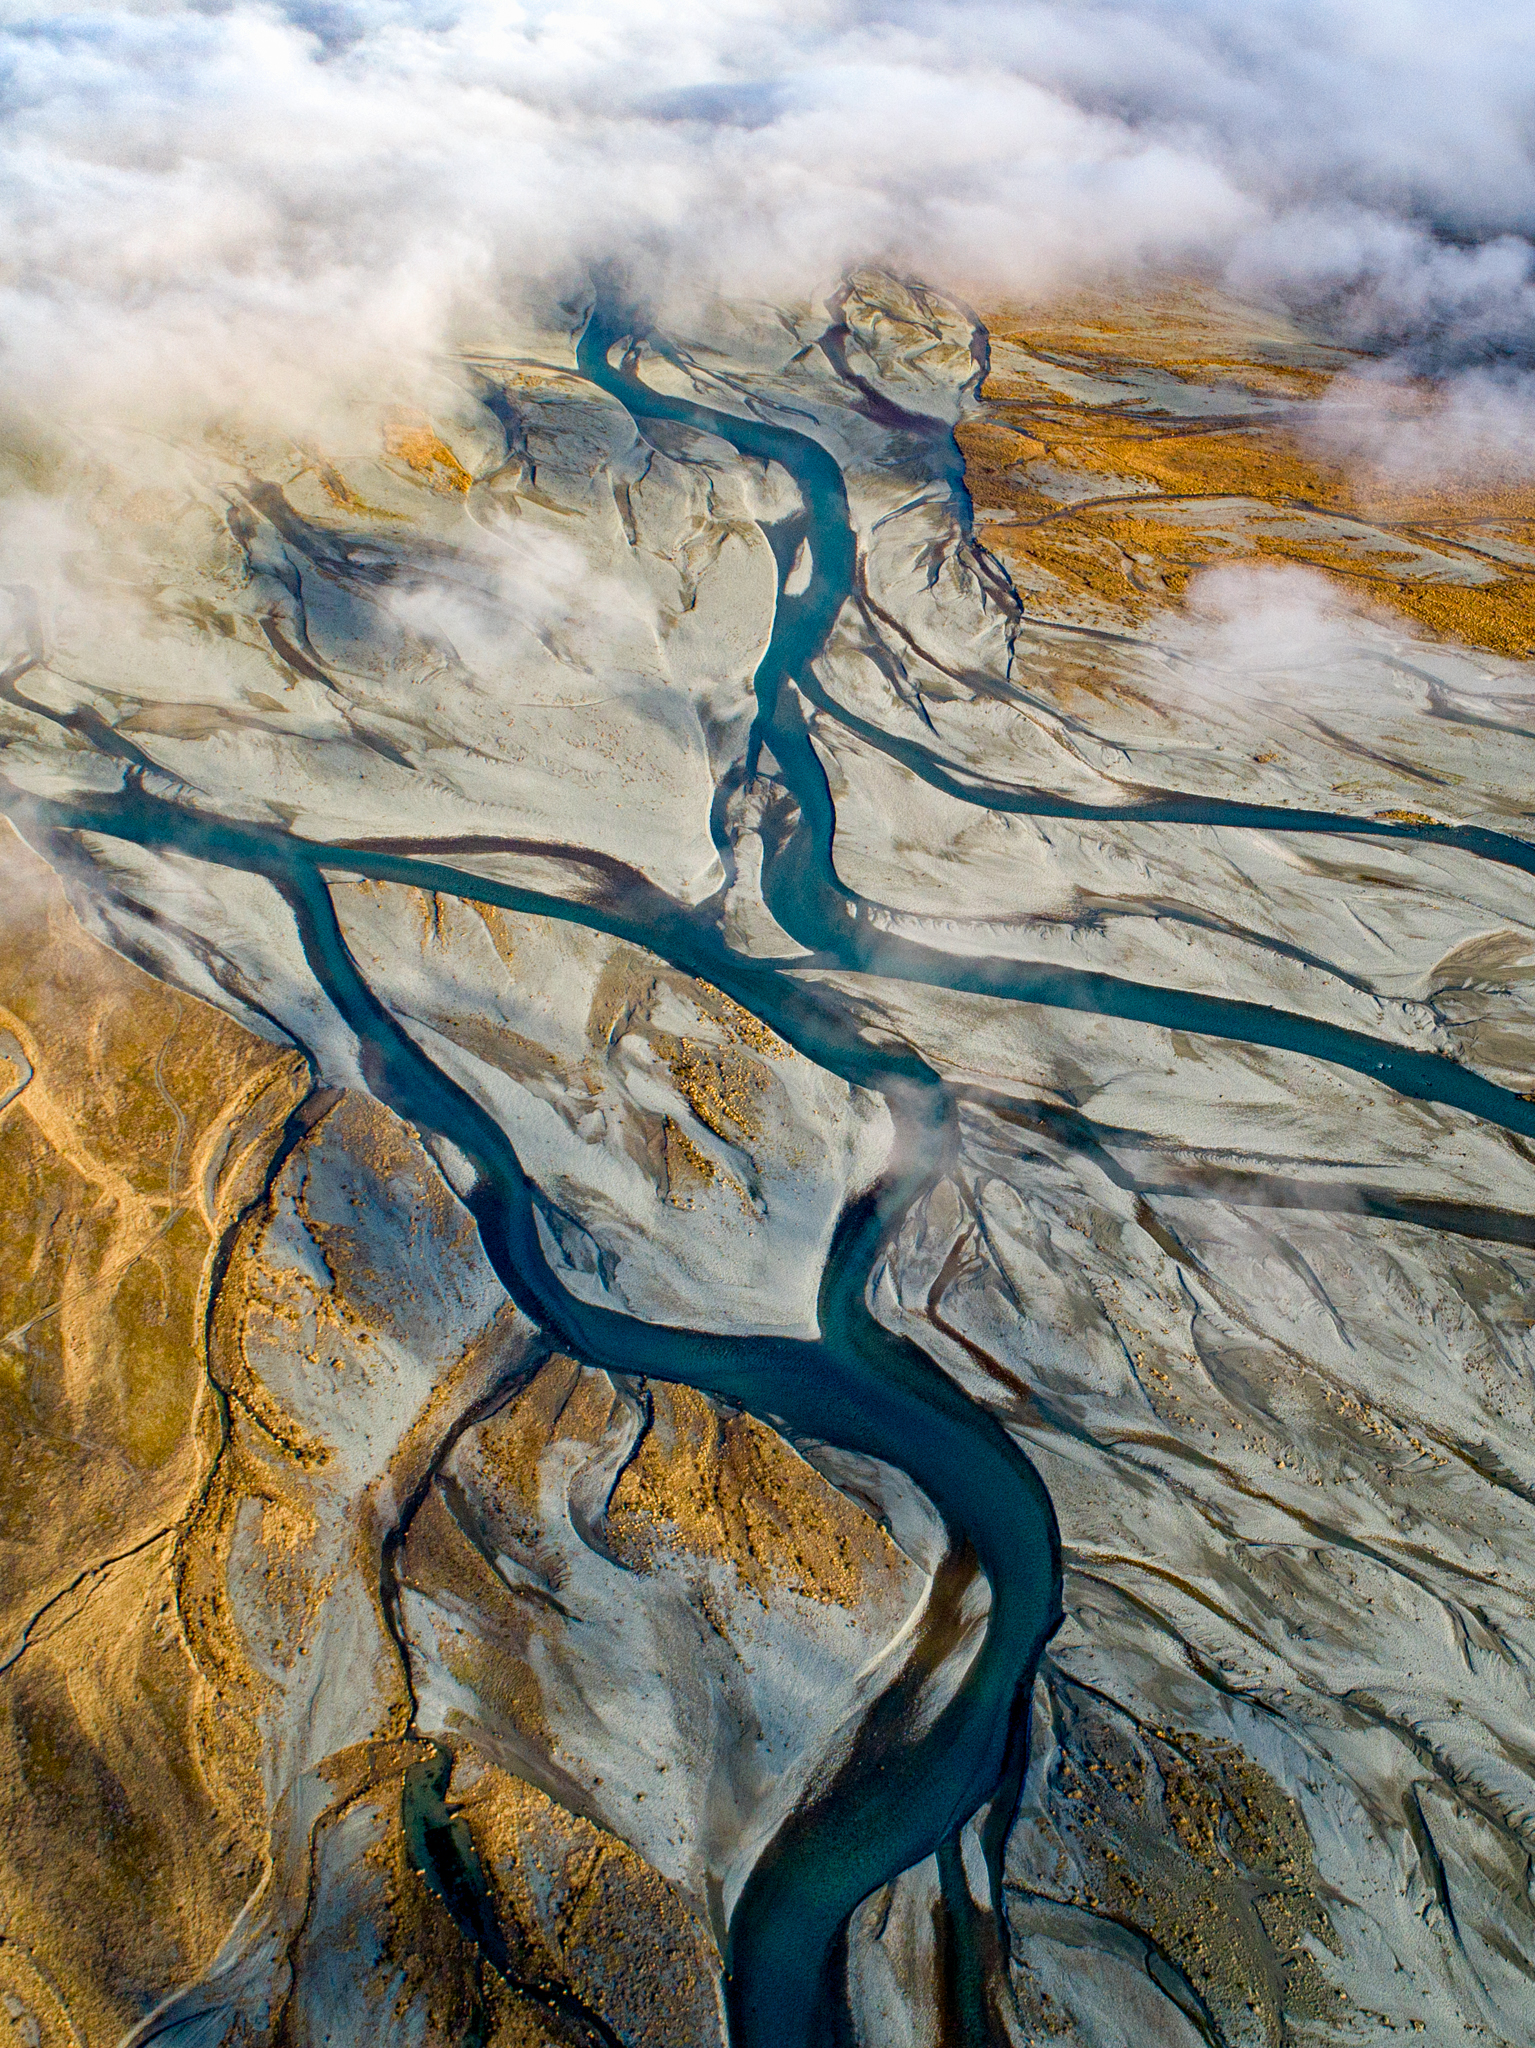 The Rangitata's flow emerges from its cloak of fog revealing the intricacies of the adventure it's on!(Talman Madsen)